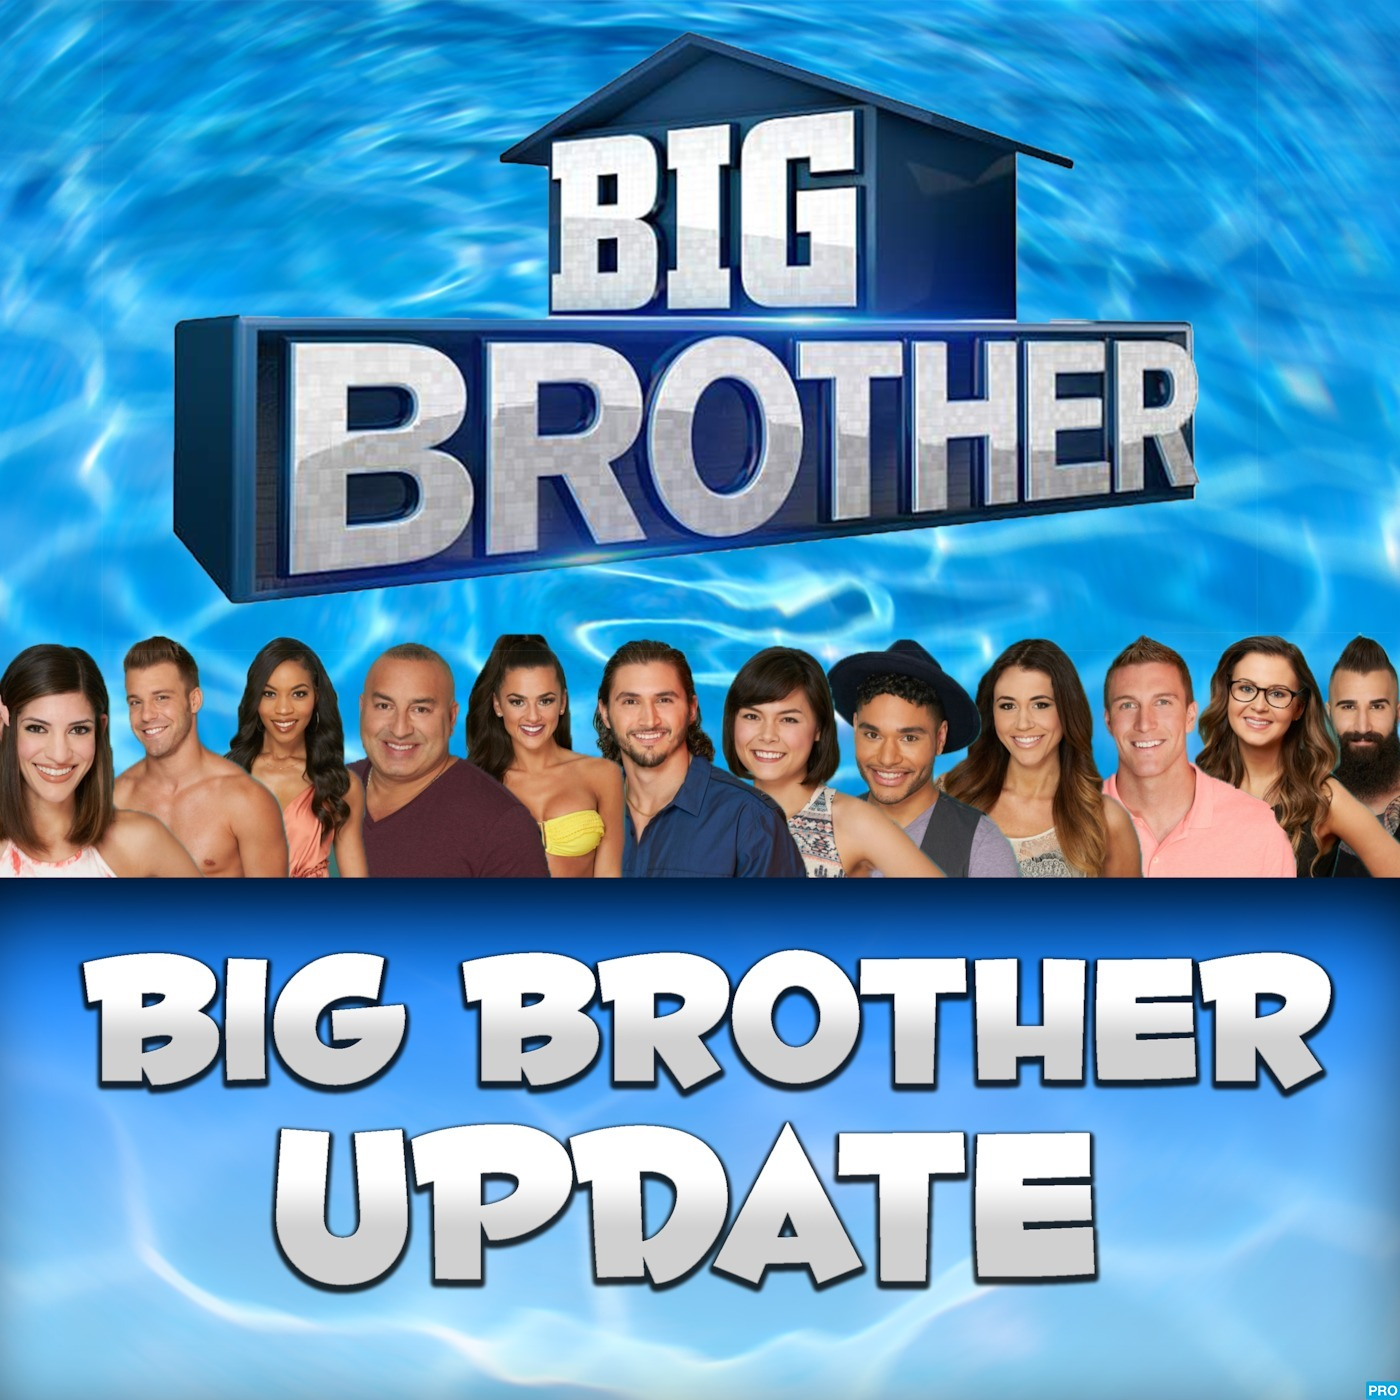 Big Brother Update